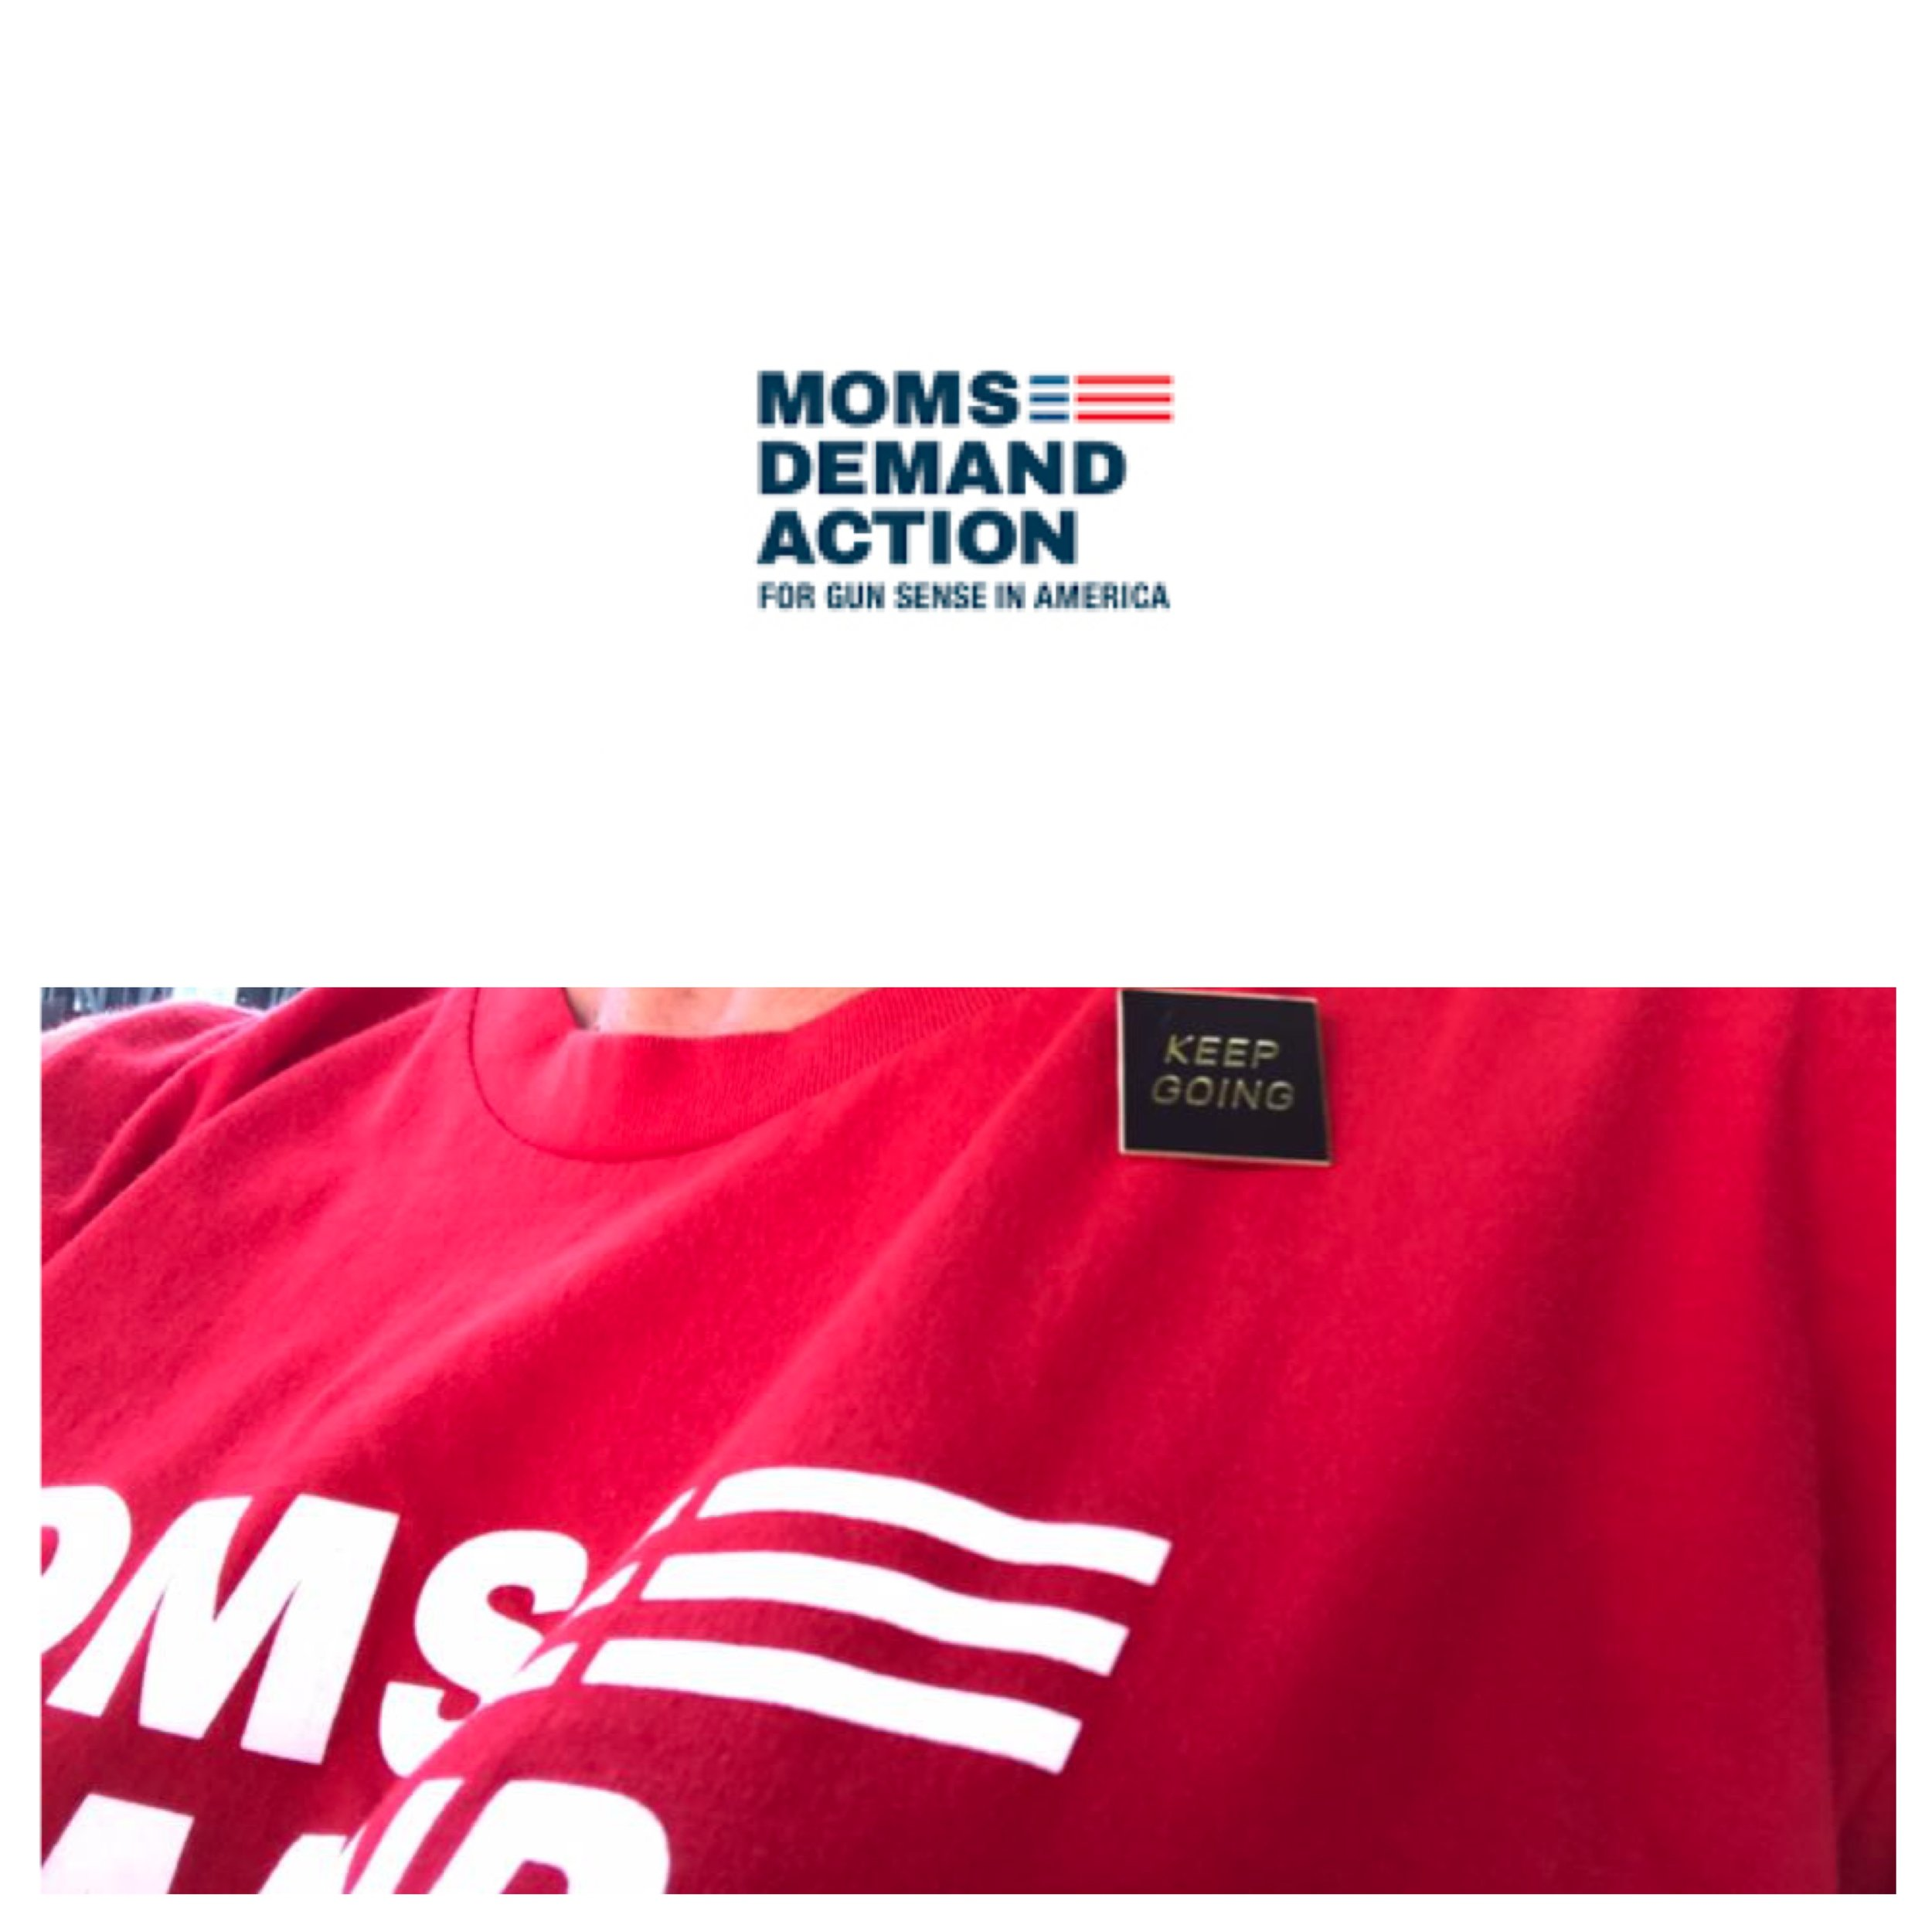 Click on this photo to learn more about Moms Demand Action.